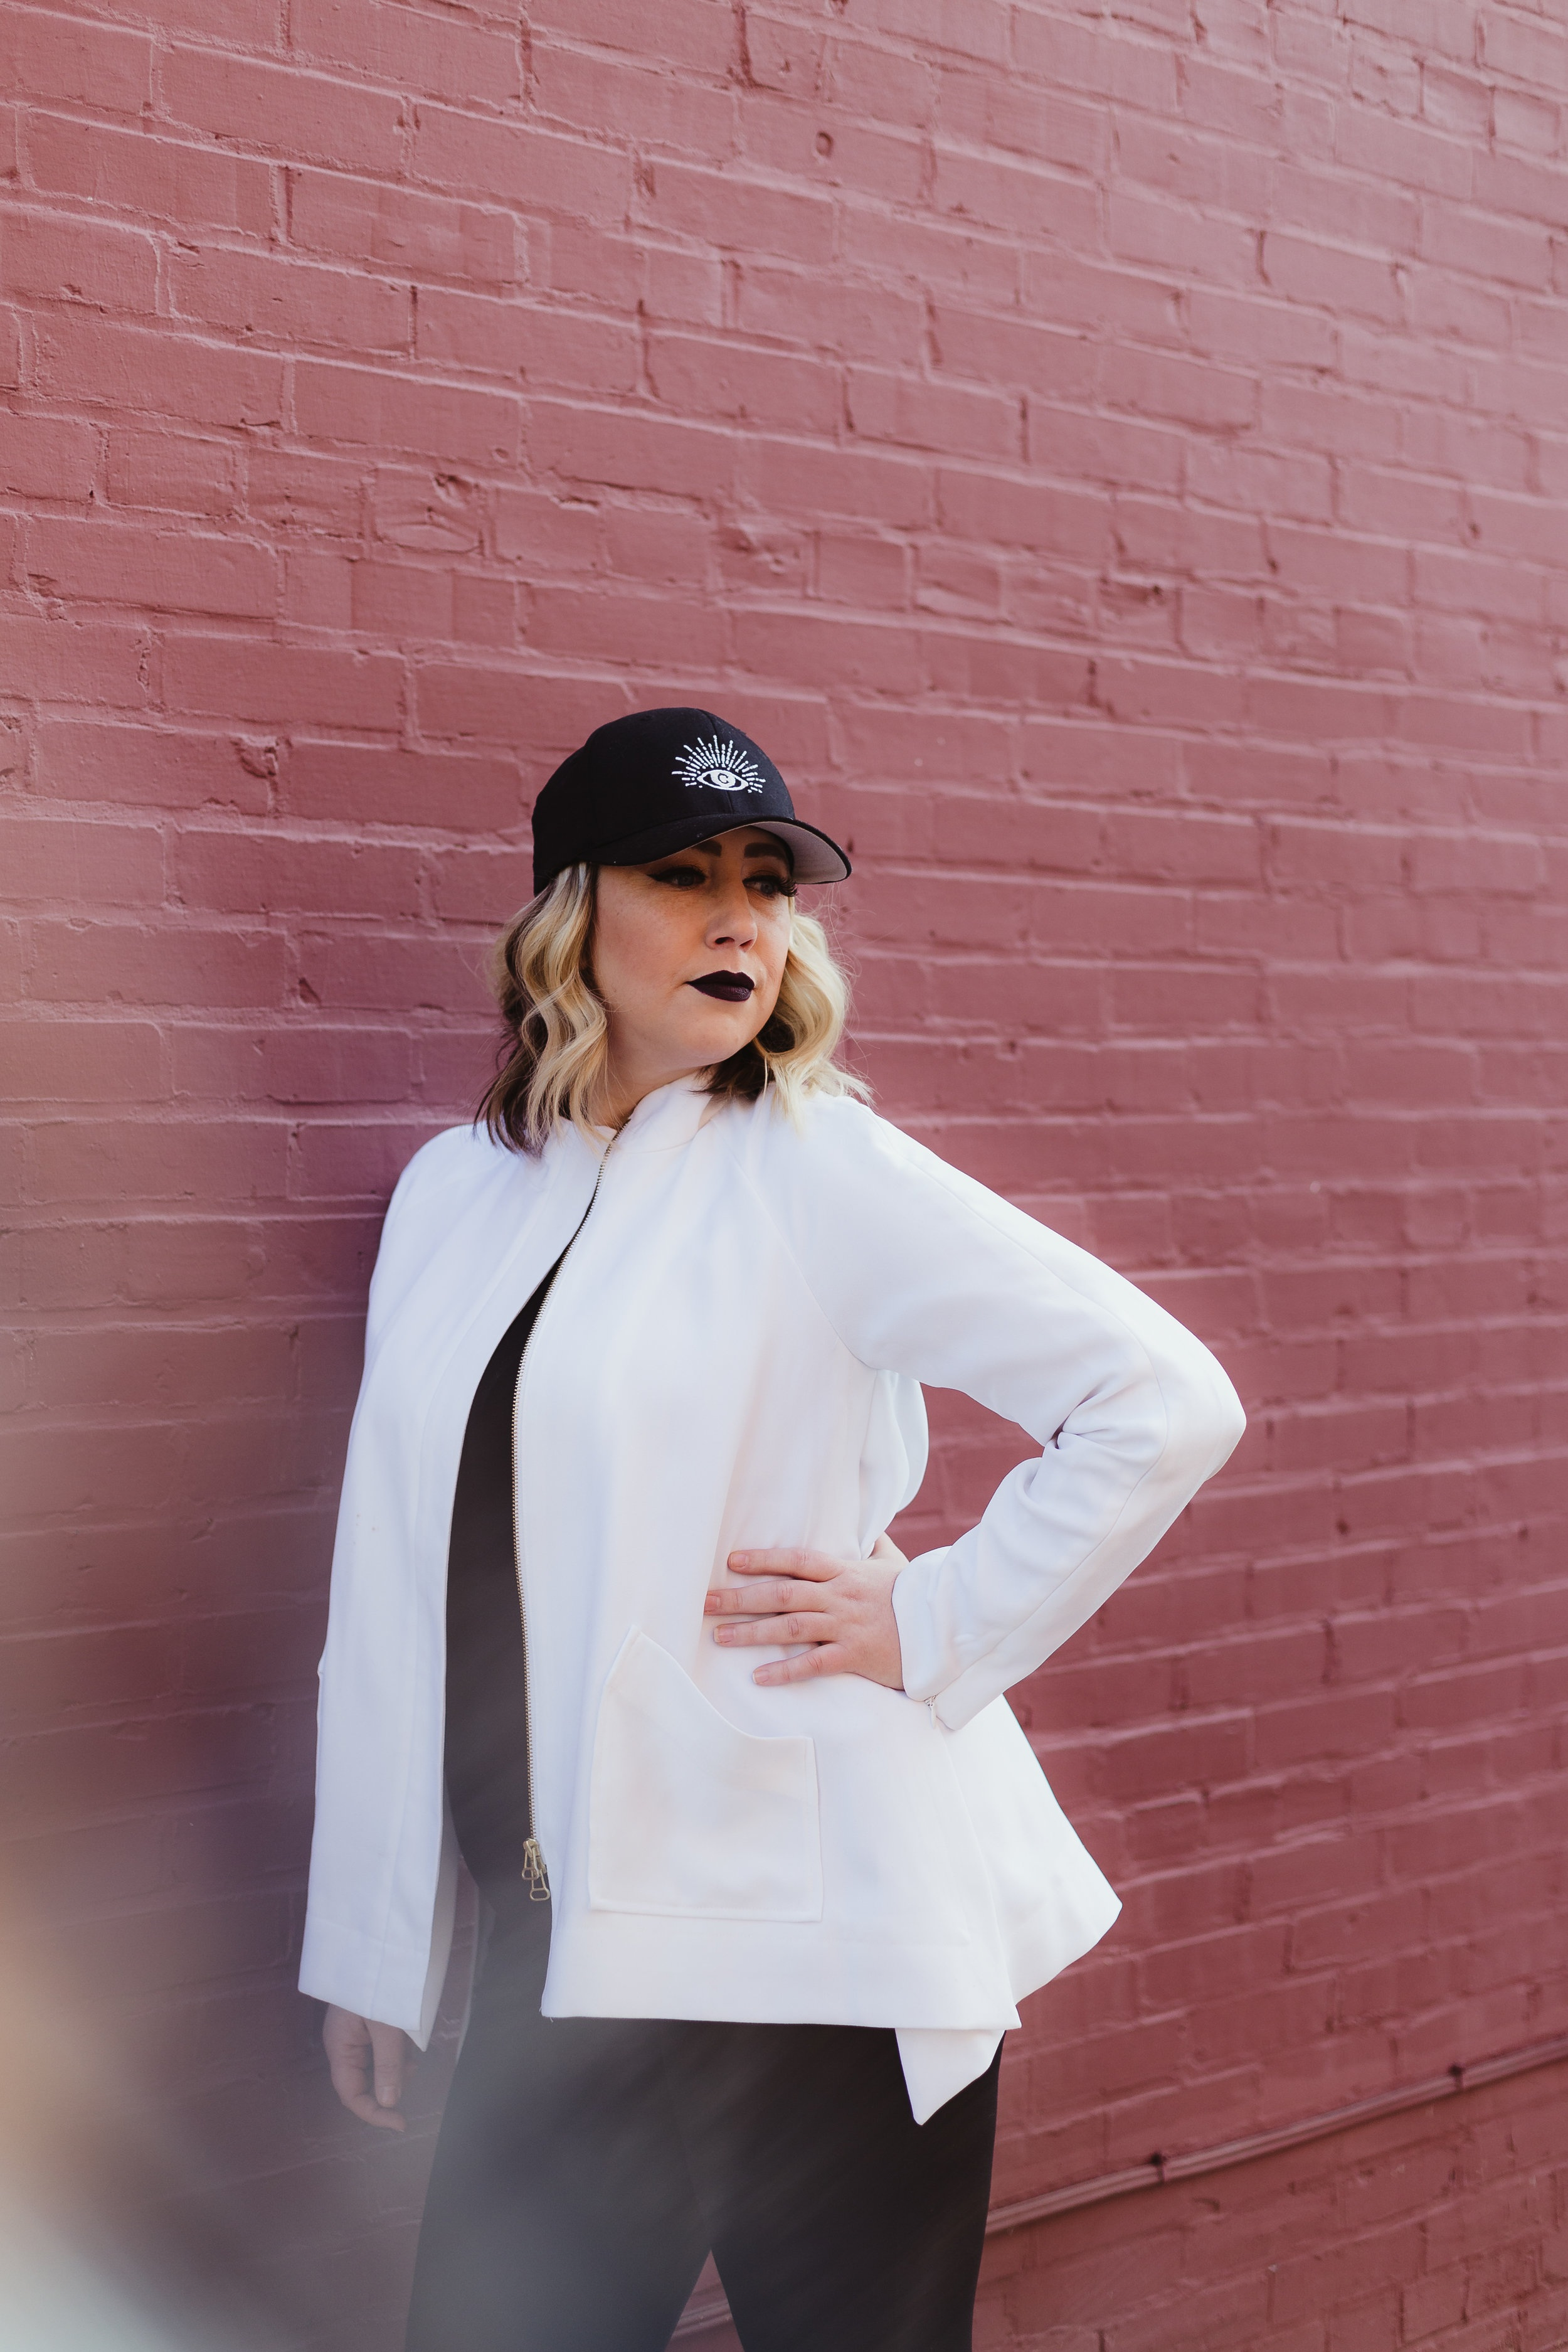 Baseball Hat - Not just for the gym or sporting events. A baseball hat is the perfect accessory for this look. A black tank, jeans, zip up and sneakers make your favorite hat the star of the show. So good for a day of errands and lunch.